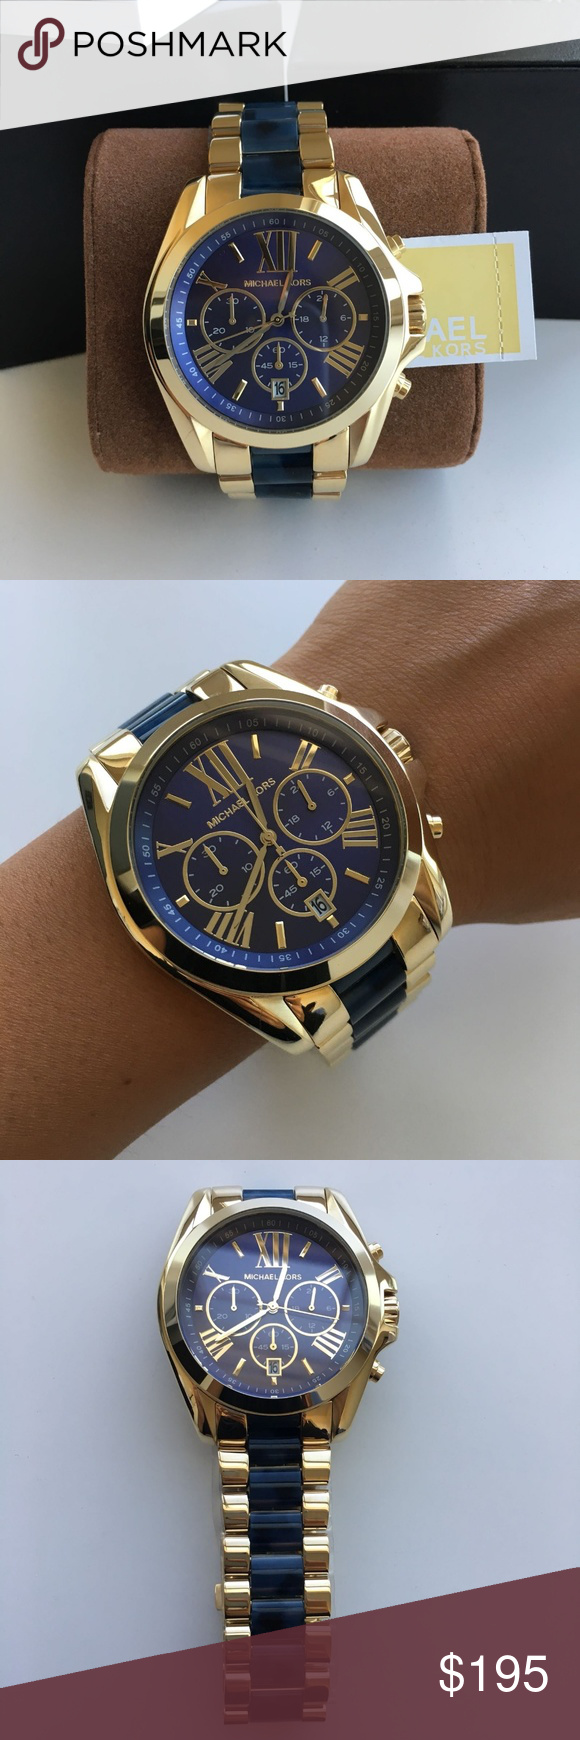 e8f6e92a6705 Stainless Steel Mailbox · New Michael Kors Gold-Tone Unisex Watch MK6268  BRAND NEW MICHAEL KORS IN THE ORIGINAL